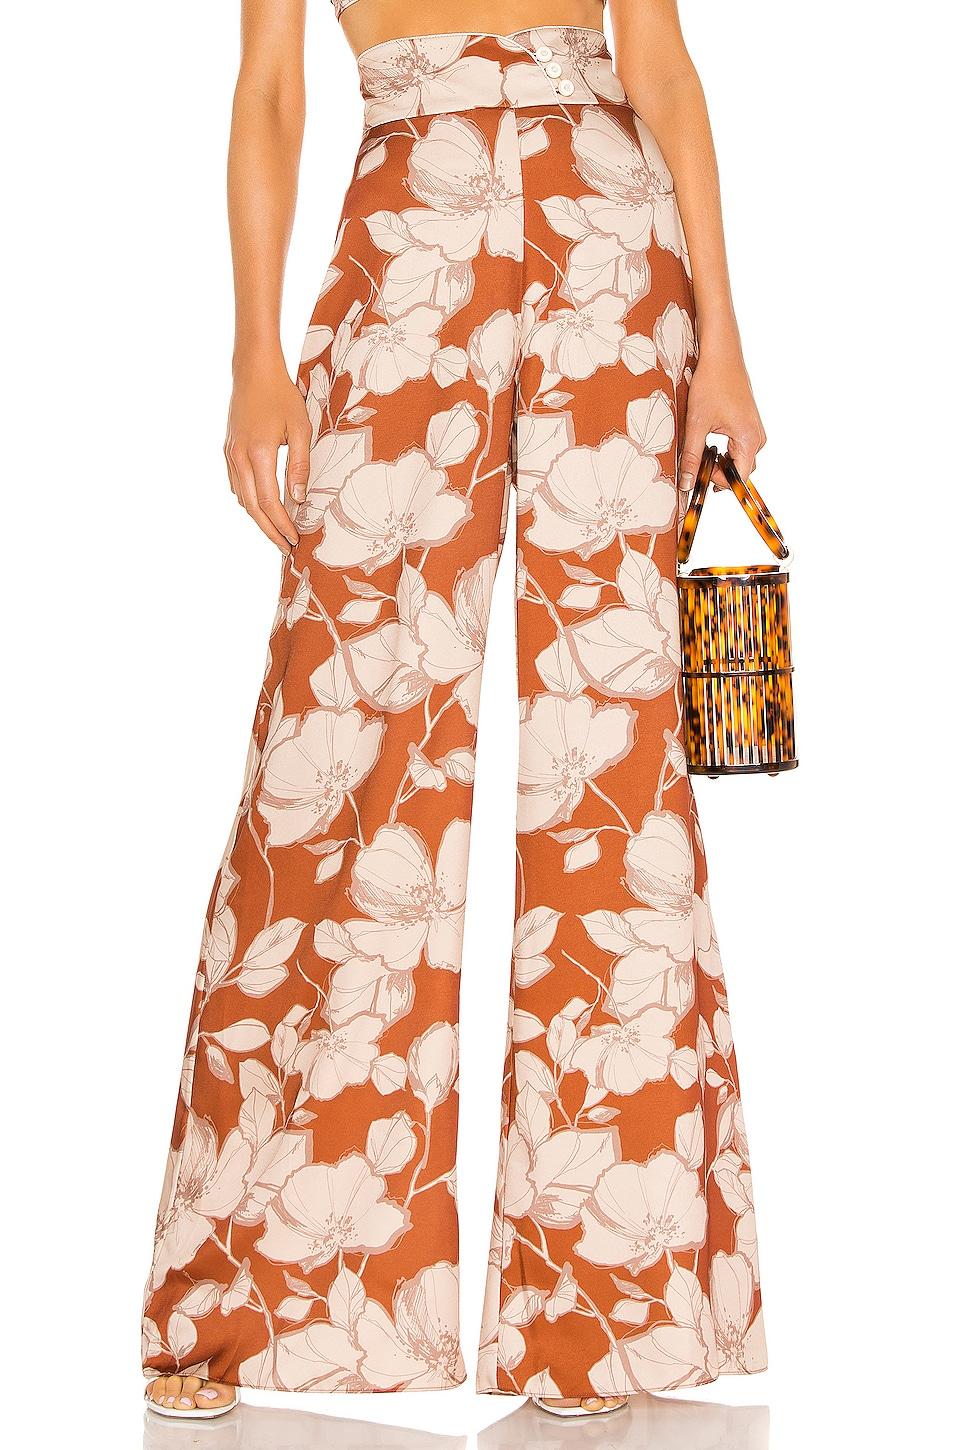 Alexis Haruna Pant in Sand Floral